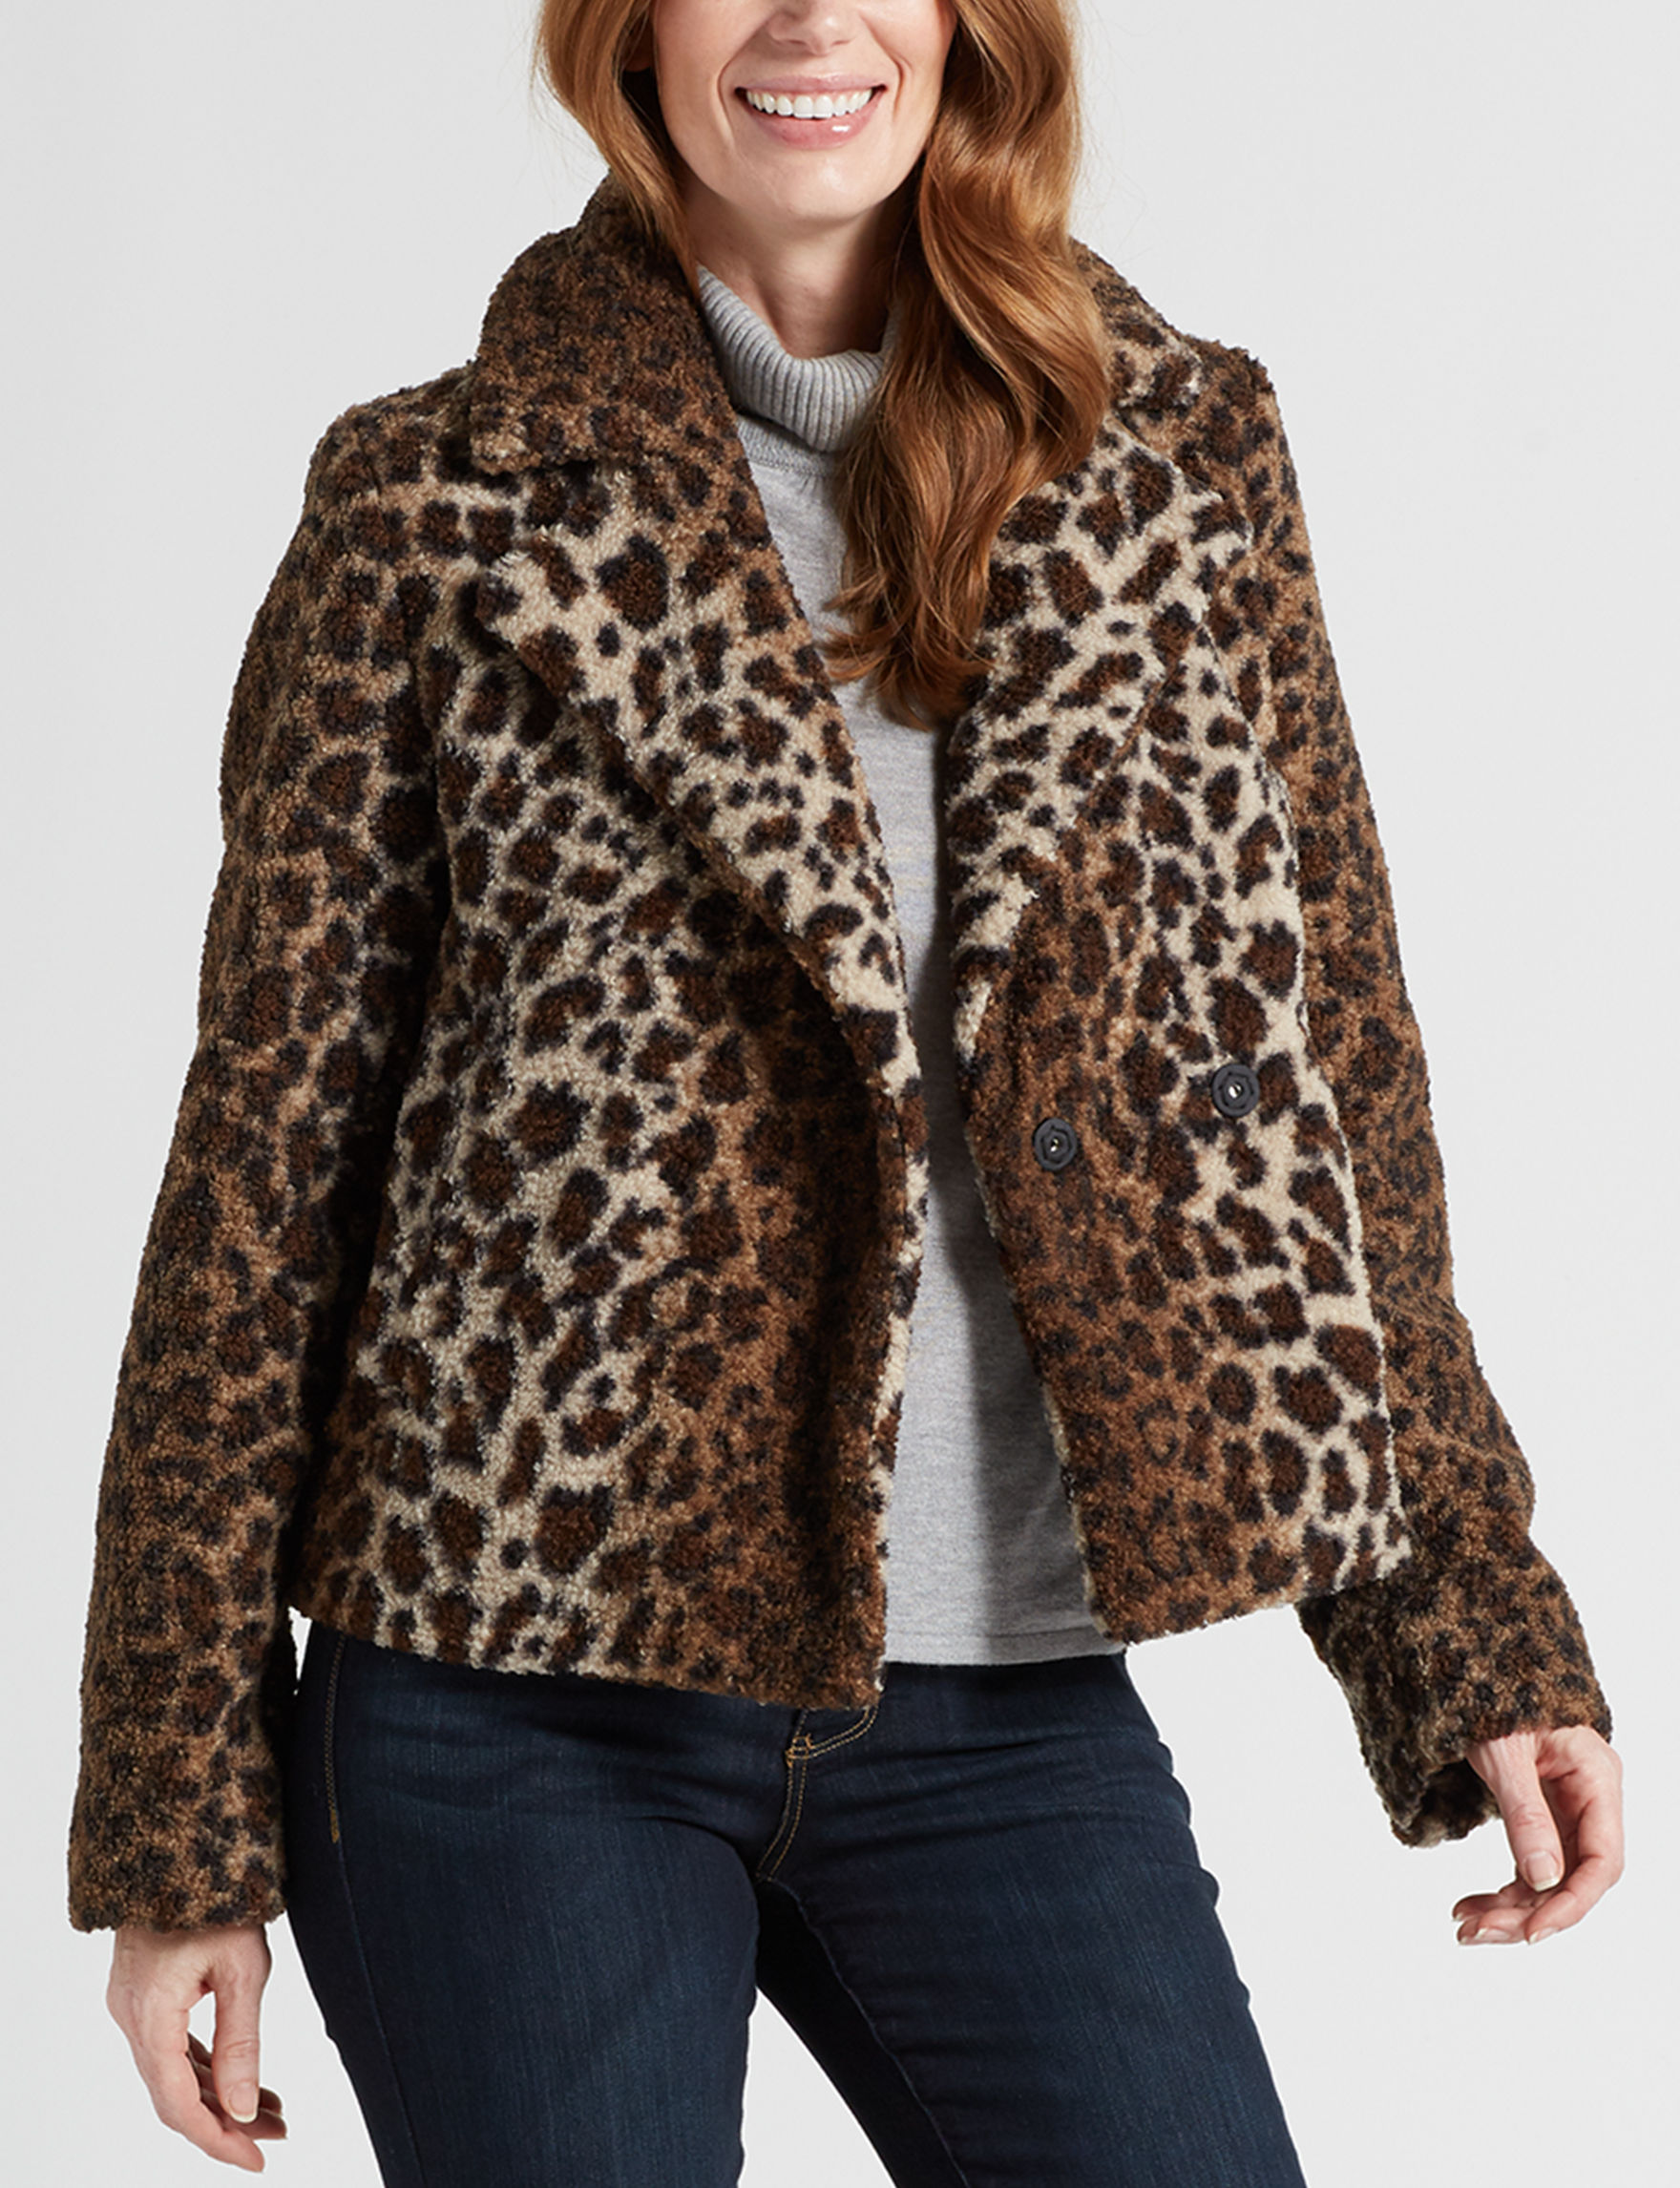 Maralyn & Me Brown Leopard Peacoats & Overcoats